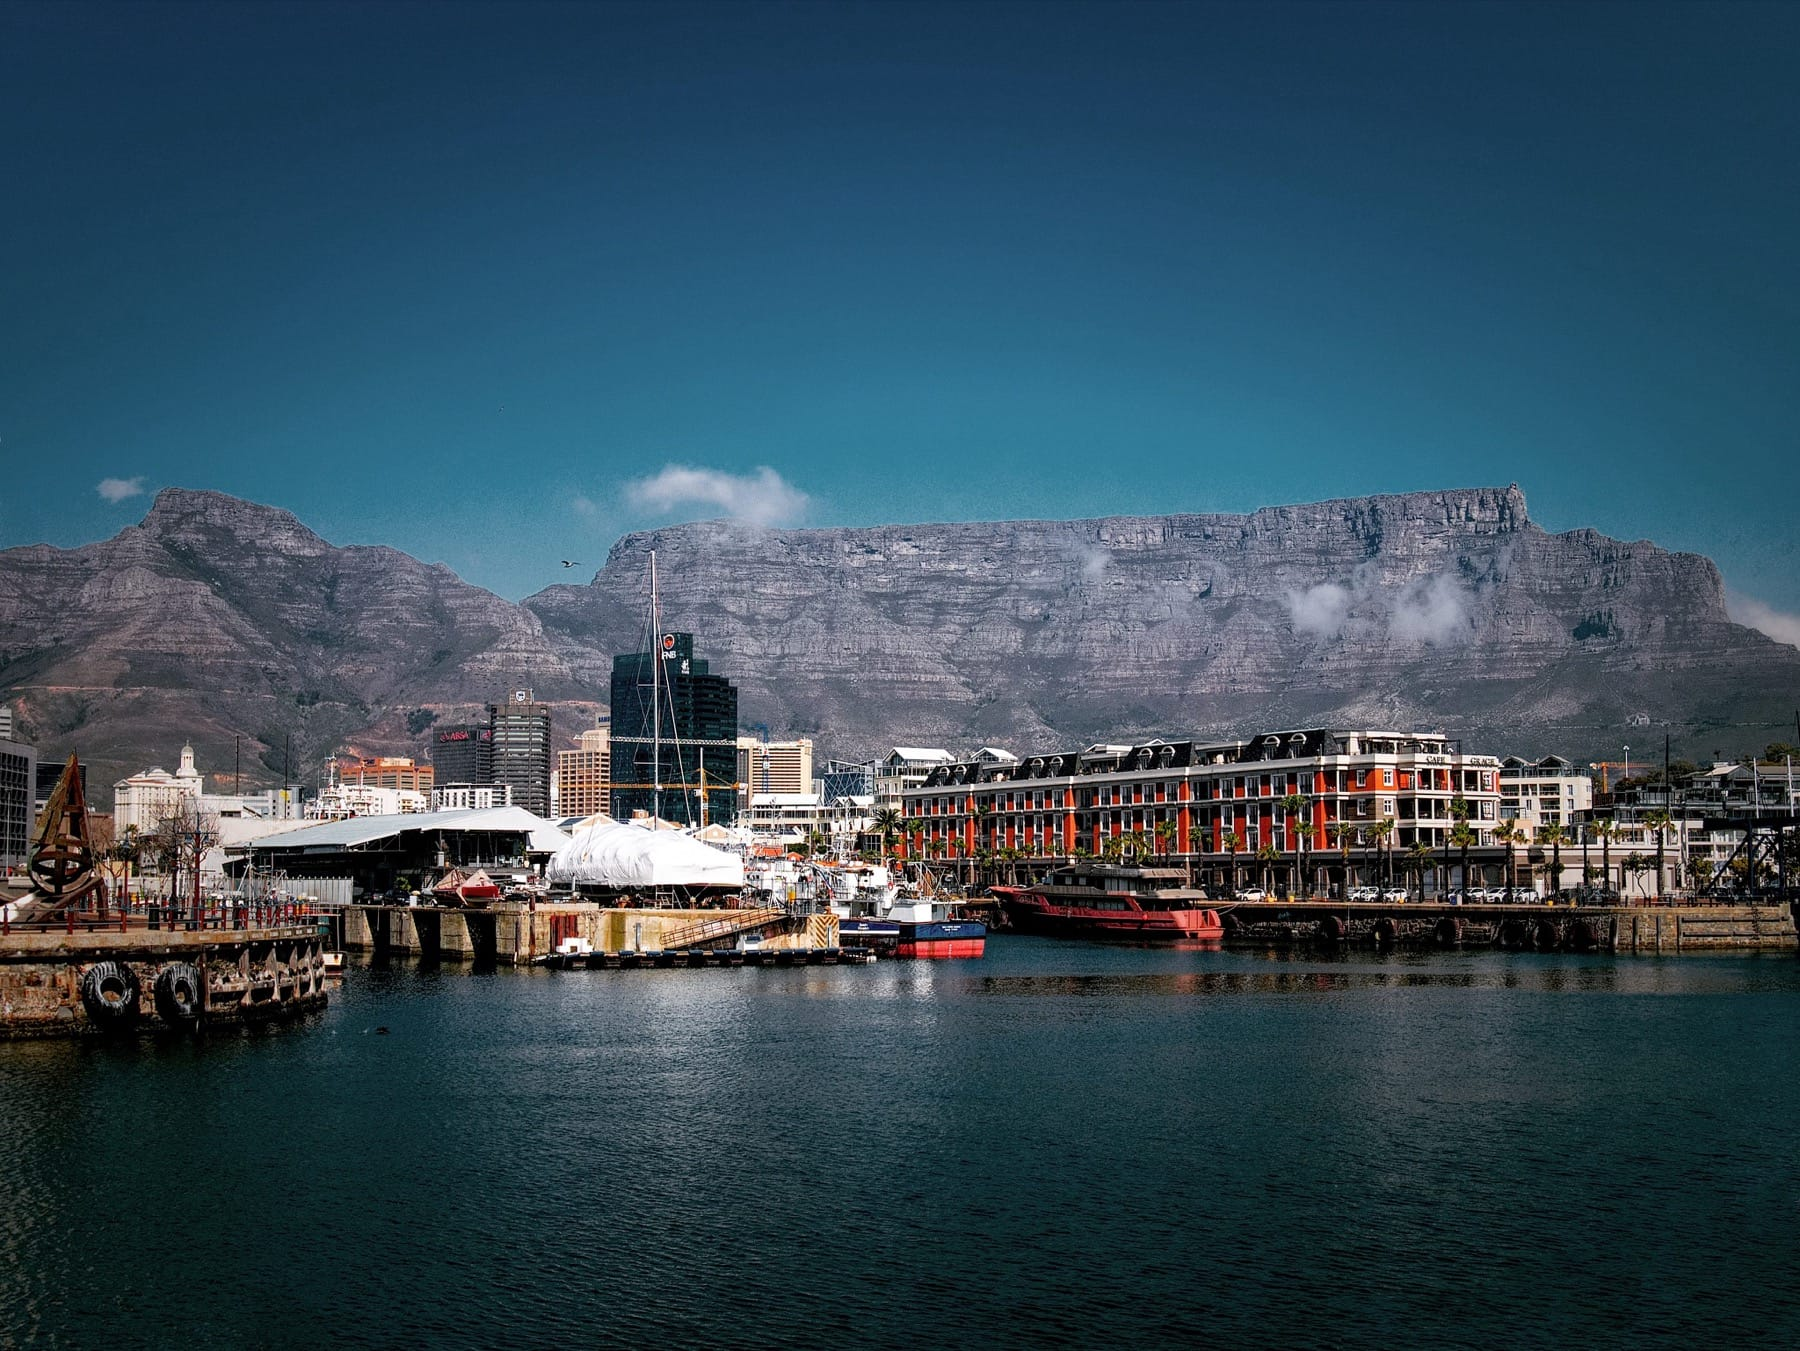 Cape Town has it all